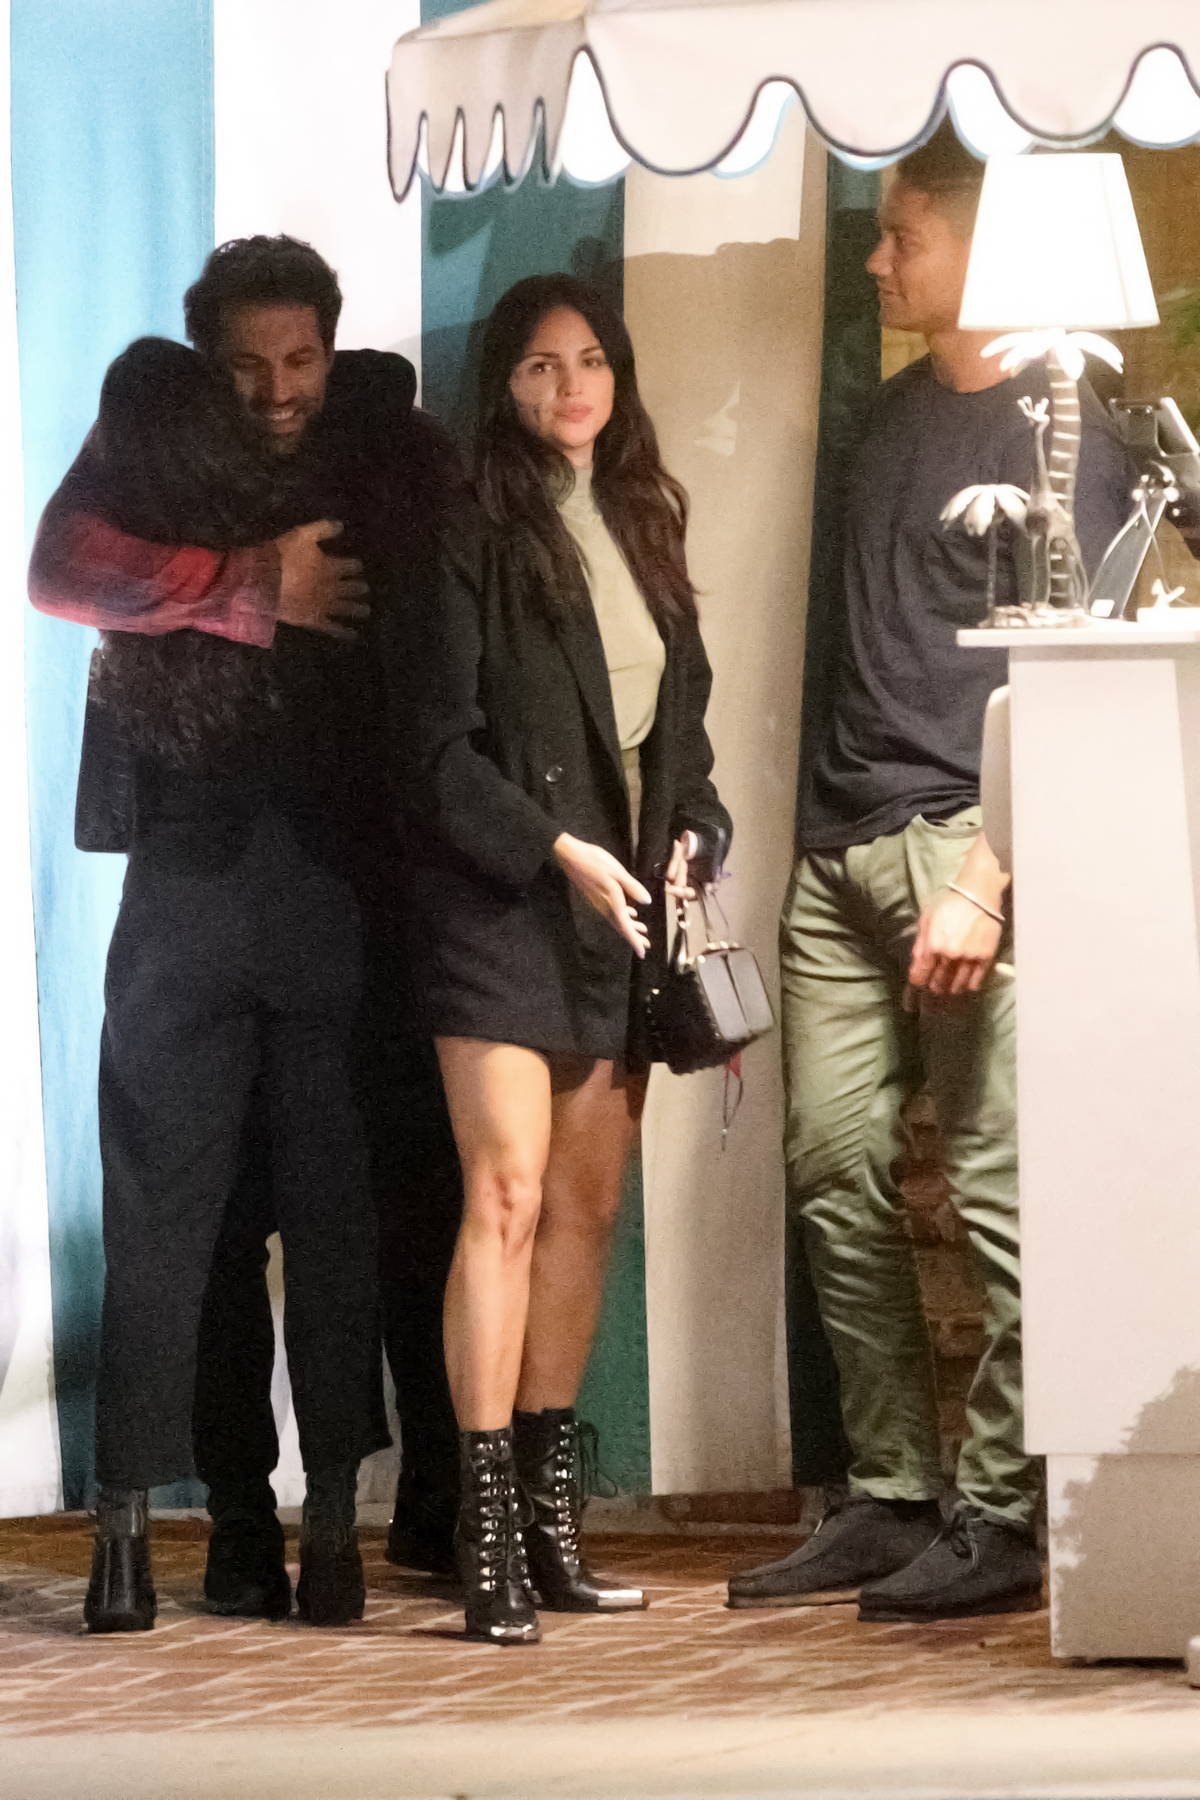 Eiza Gonzalez shows off her legs in a mini skirt during a double date in West Hollywood, California